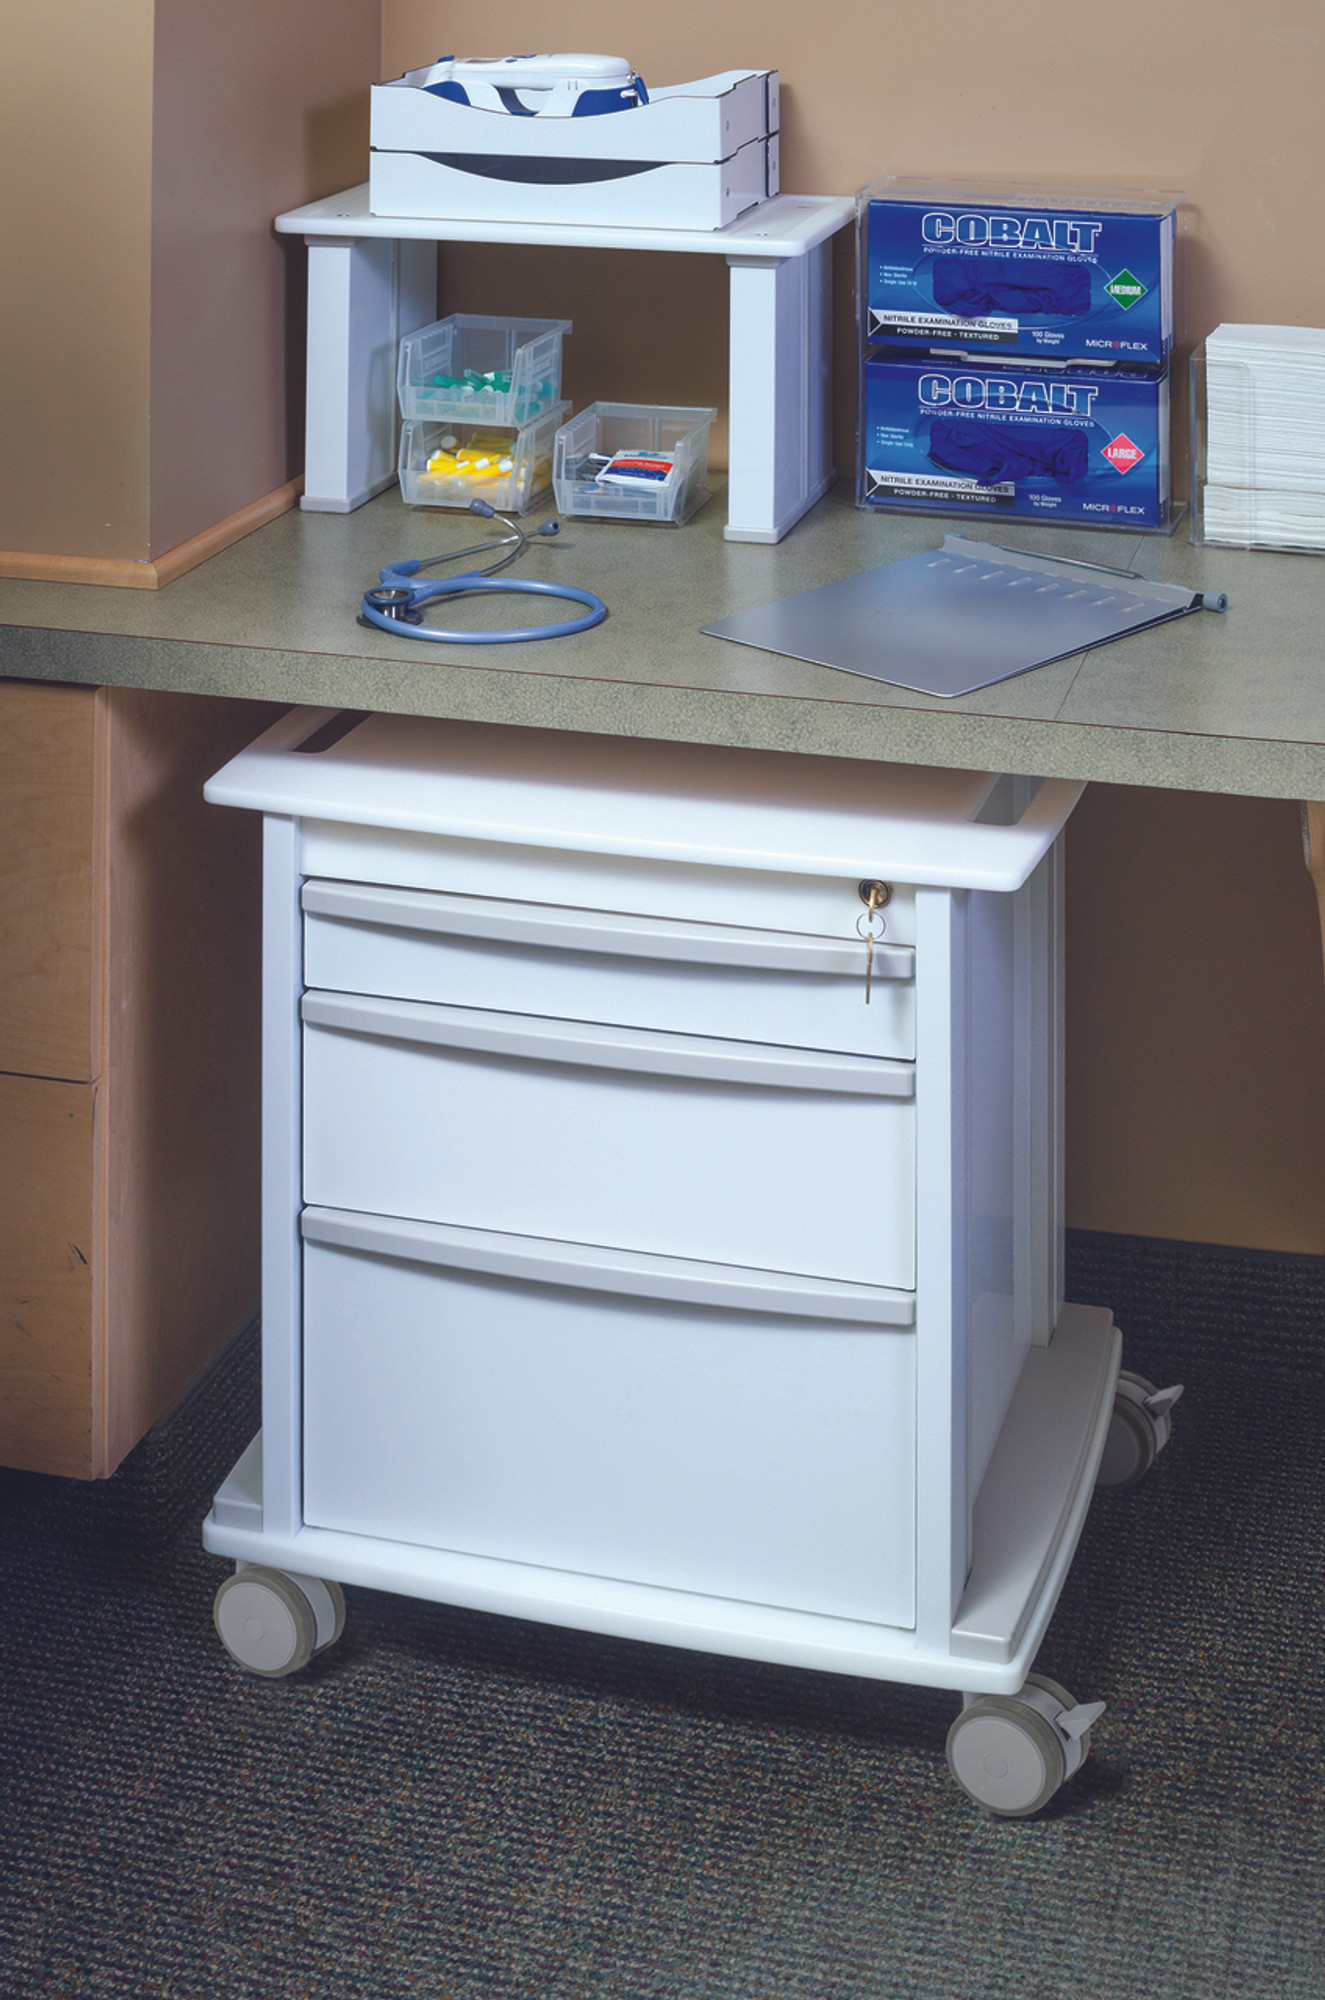 Genial Omnicart Under Counter Storage Cart ...